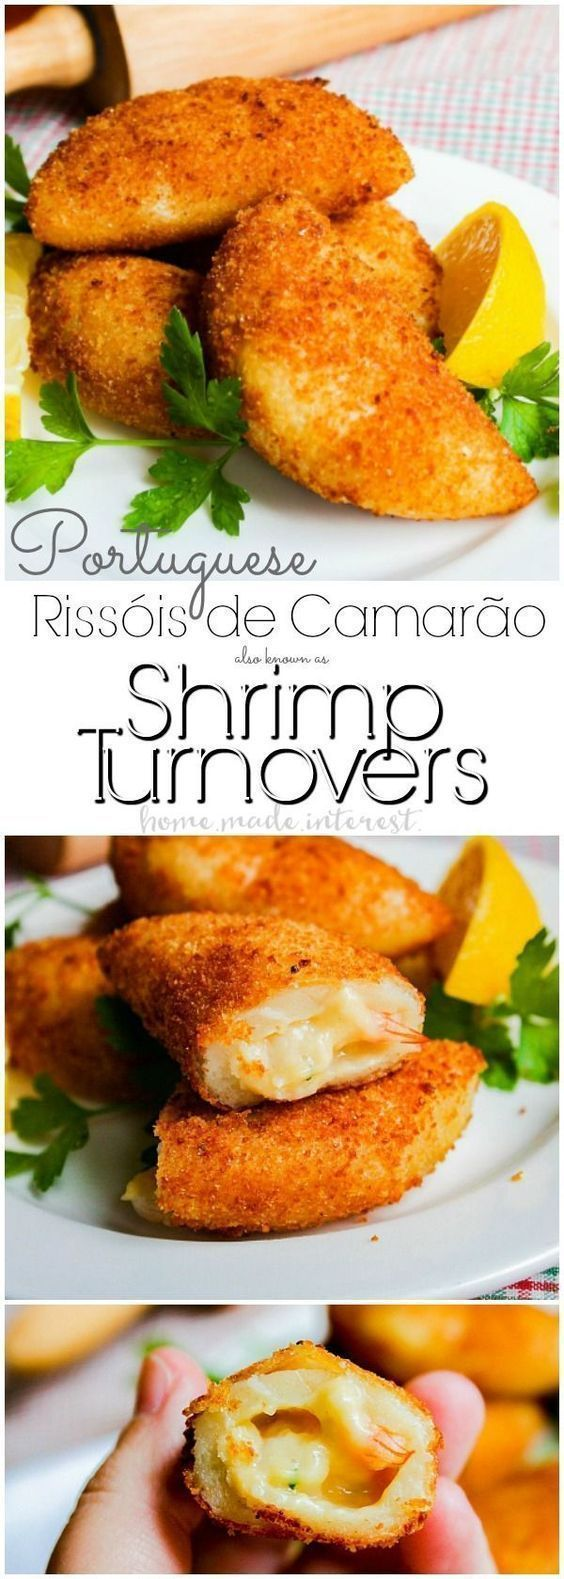 Portuguese Shrimp Turnovers   My favorite appetizer for parties and celebrations are these Portuguese Shrimp Turnovers or Rissóis de Camarão. These shrimp dumplings are the ultimate Portuguese tradition and you'll find them at every party and big event. This Shrimp turnover recipe is one of the best party appetizer recipes you will ever try. These shrimp dumplings are a make ahead appetizer recipe and they made a great seafood recipe for Lent or Easter Brunch recipe.